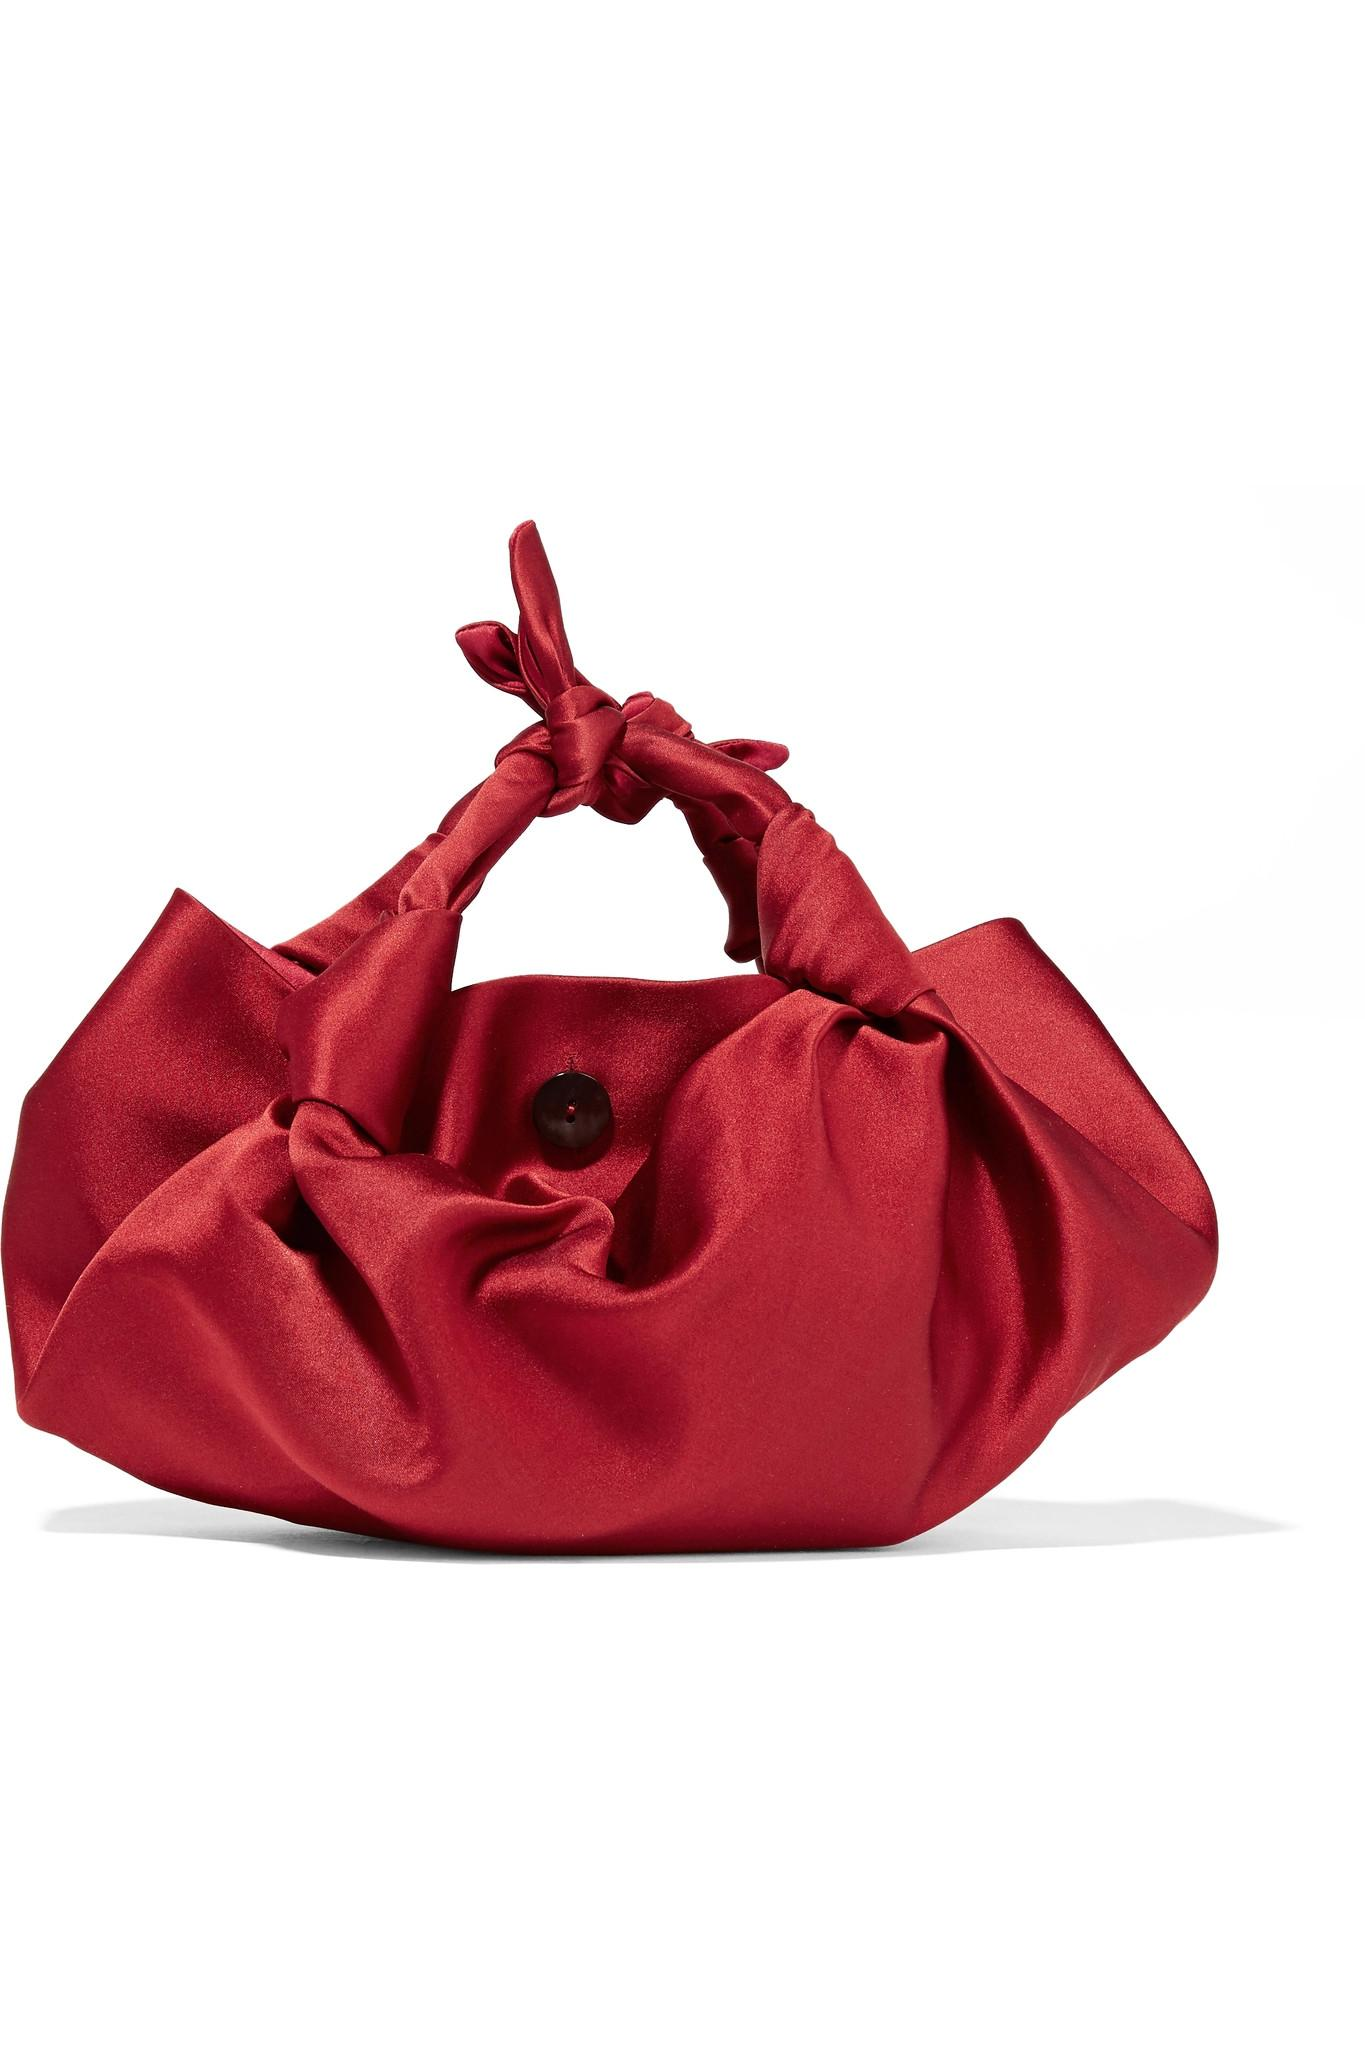 Lyst - The Row The Ascot Small Satin Hobo Bag in Red 9248bc8b3190e